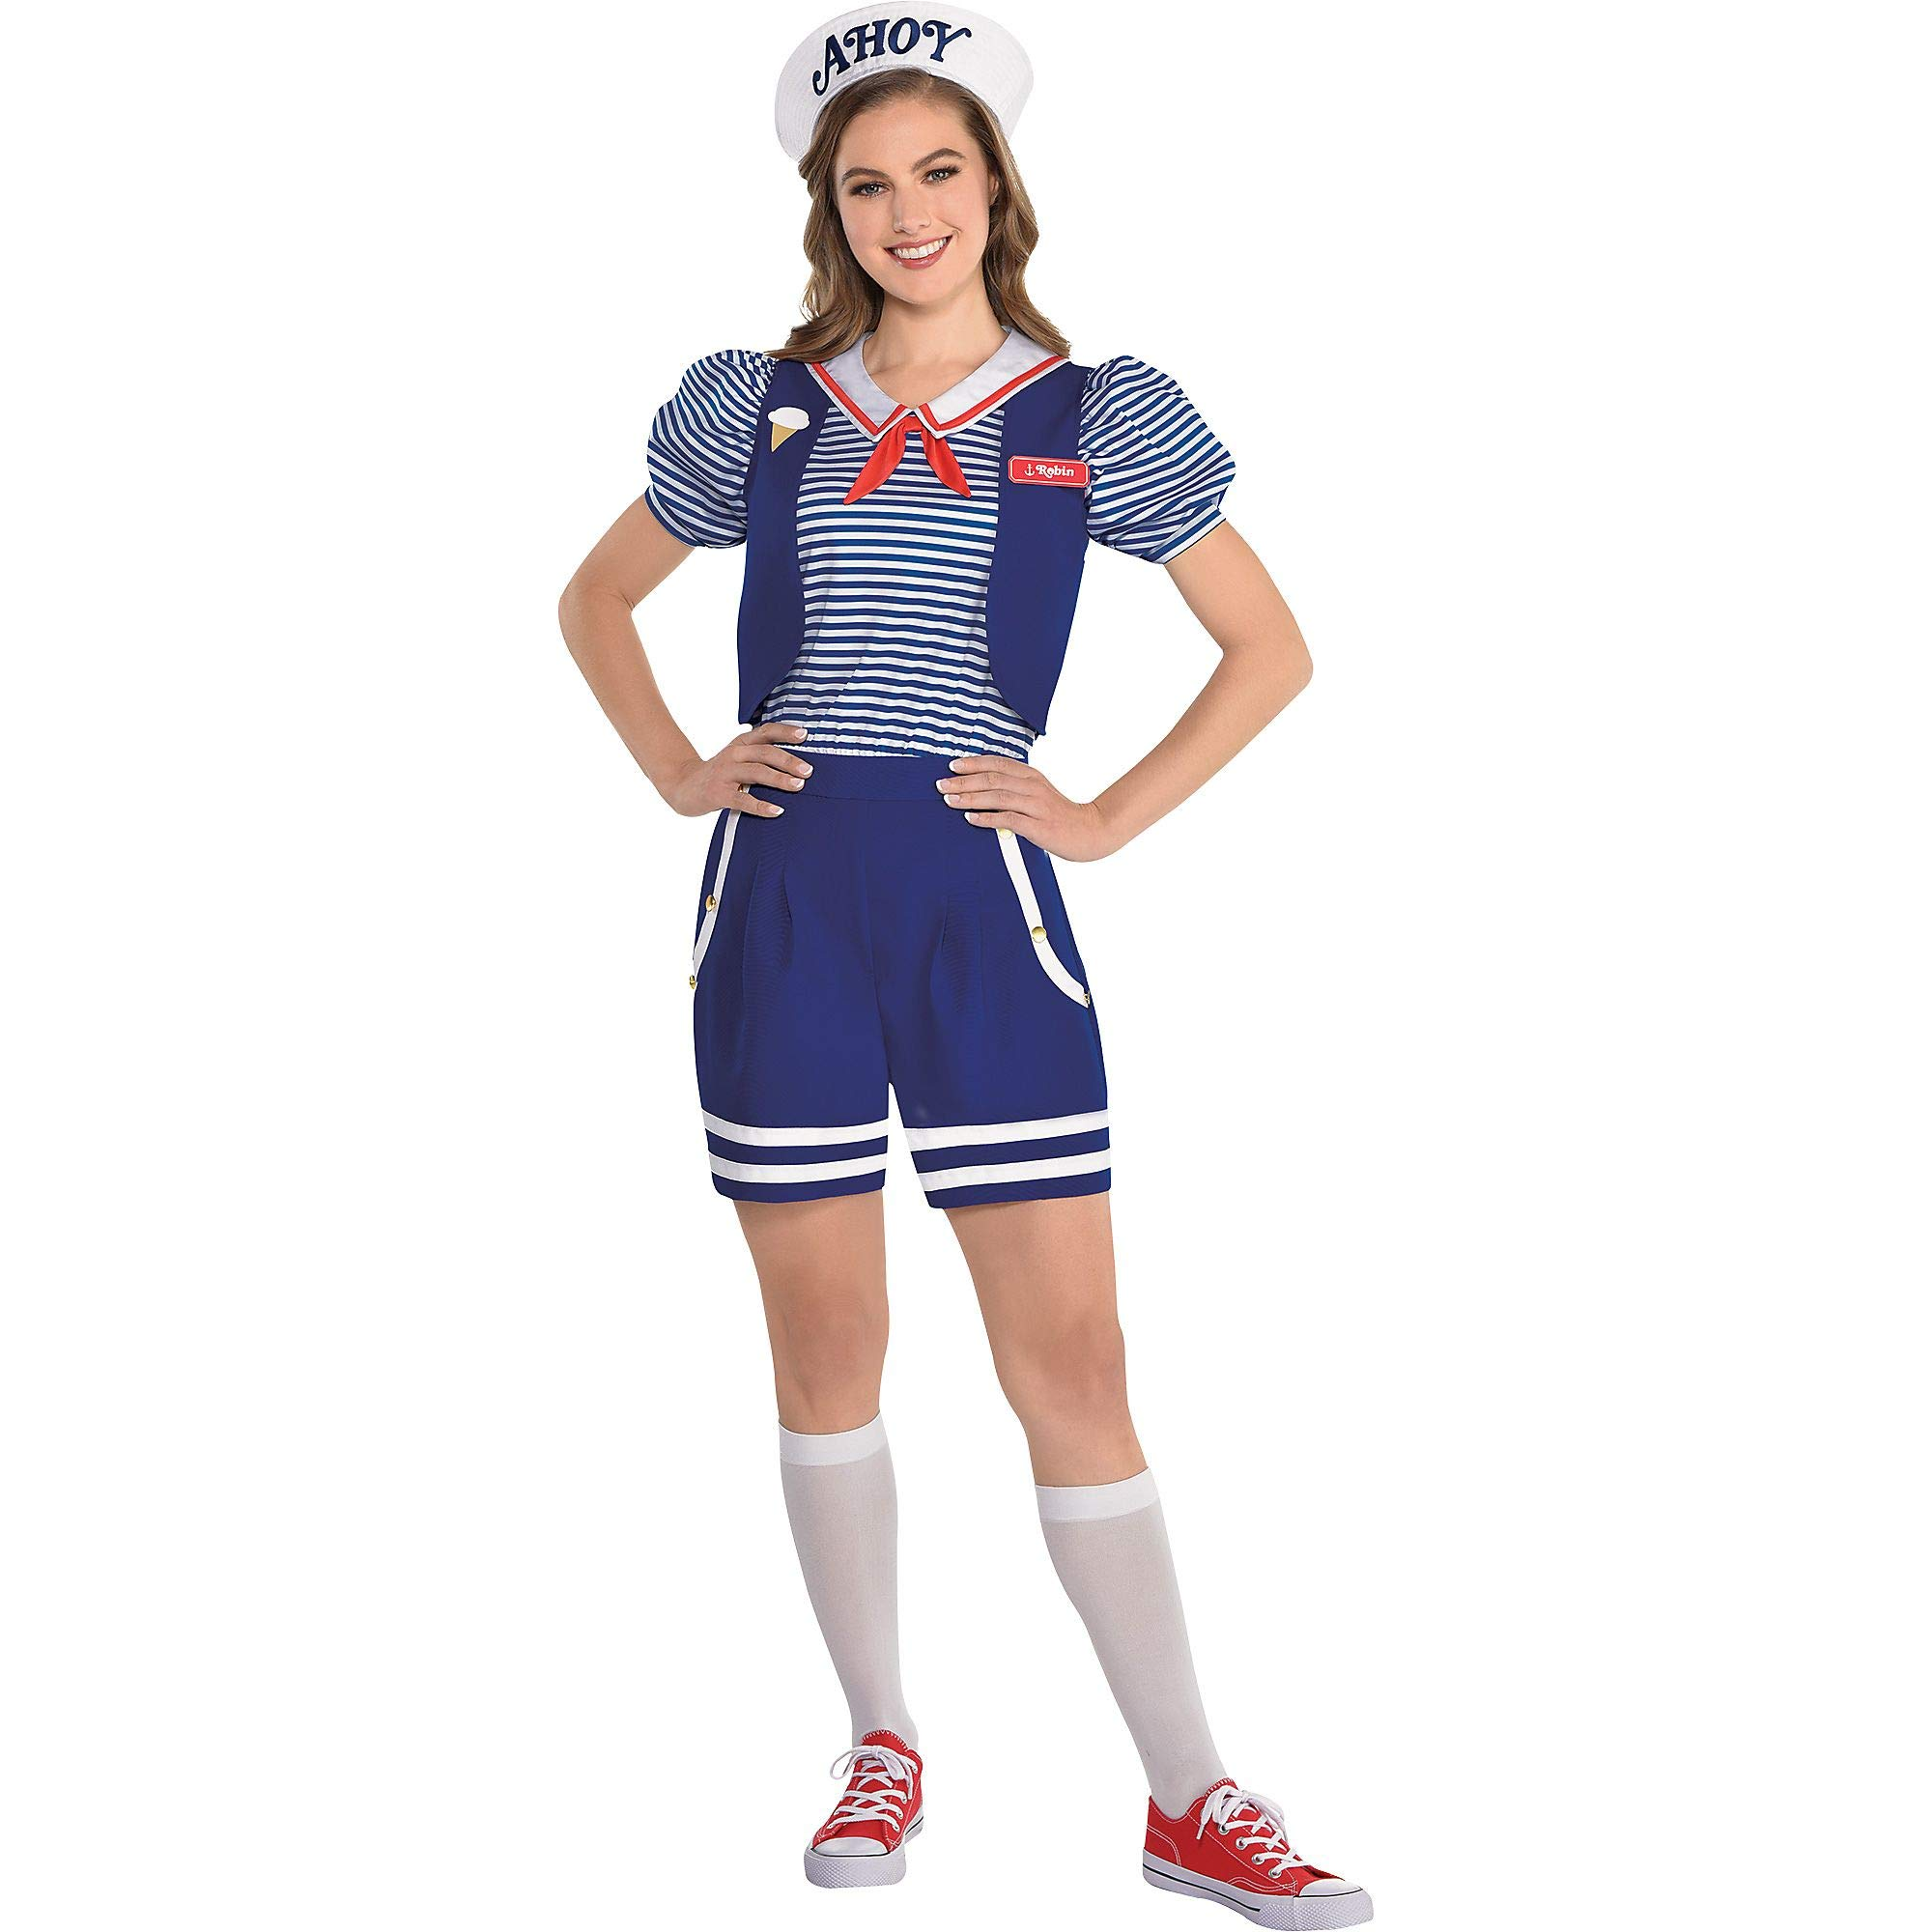 Party City Robin Scoops Ahoy Halloween Costume for Adults, Stranger Things, Small/Medium, with Accessories